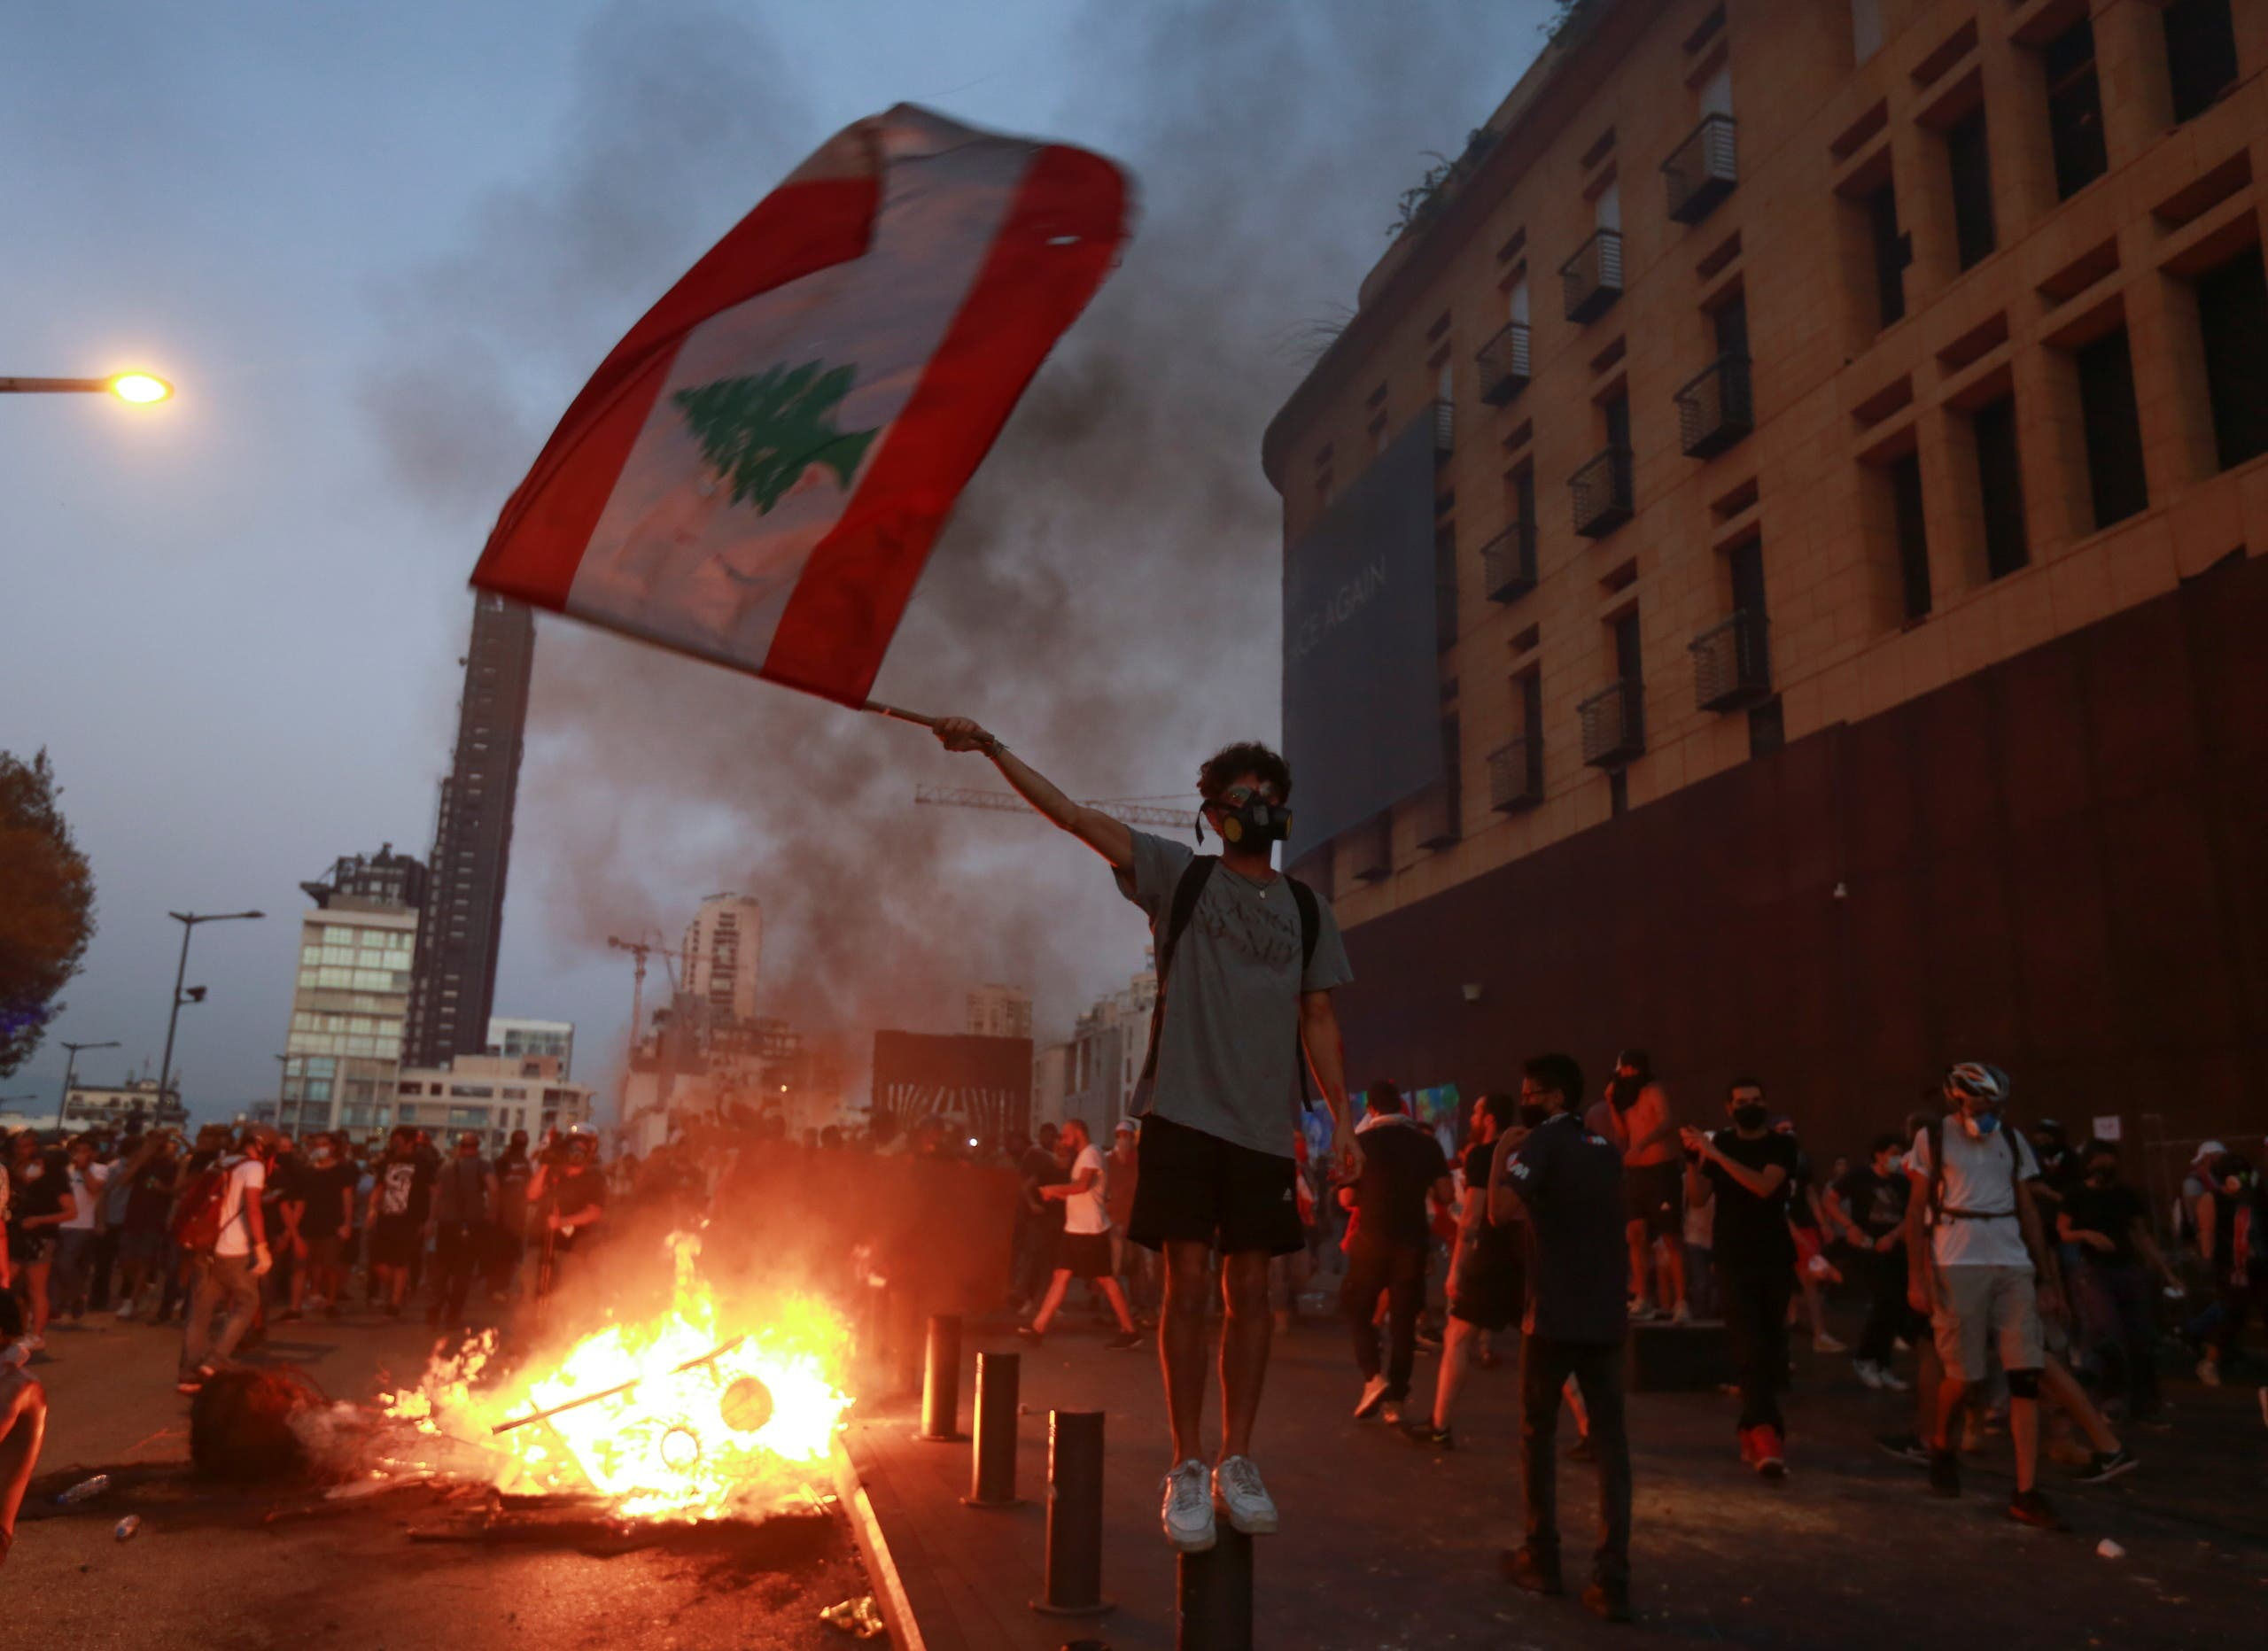 Demonstrators walk near a burning fire during a protest near parliament, as Lebanon marks the one-year anniversary of the explosion in Beirut, Lebanon August 4, 2021. (Reuters)